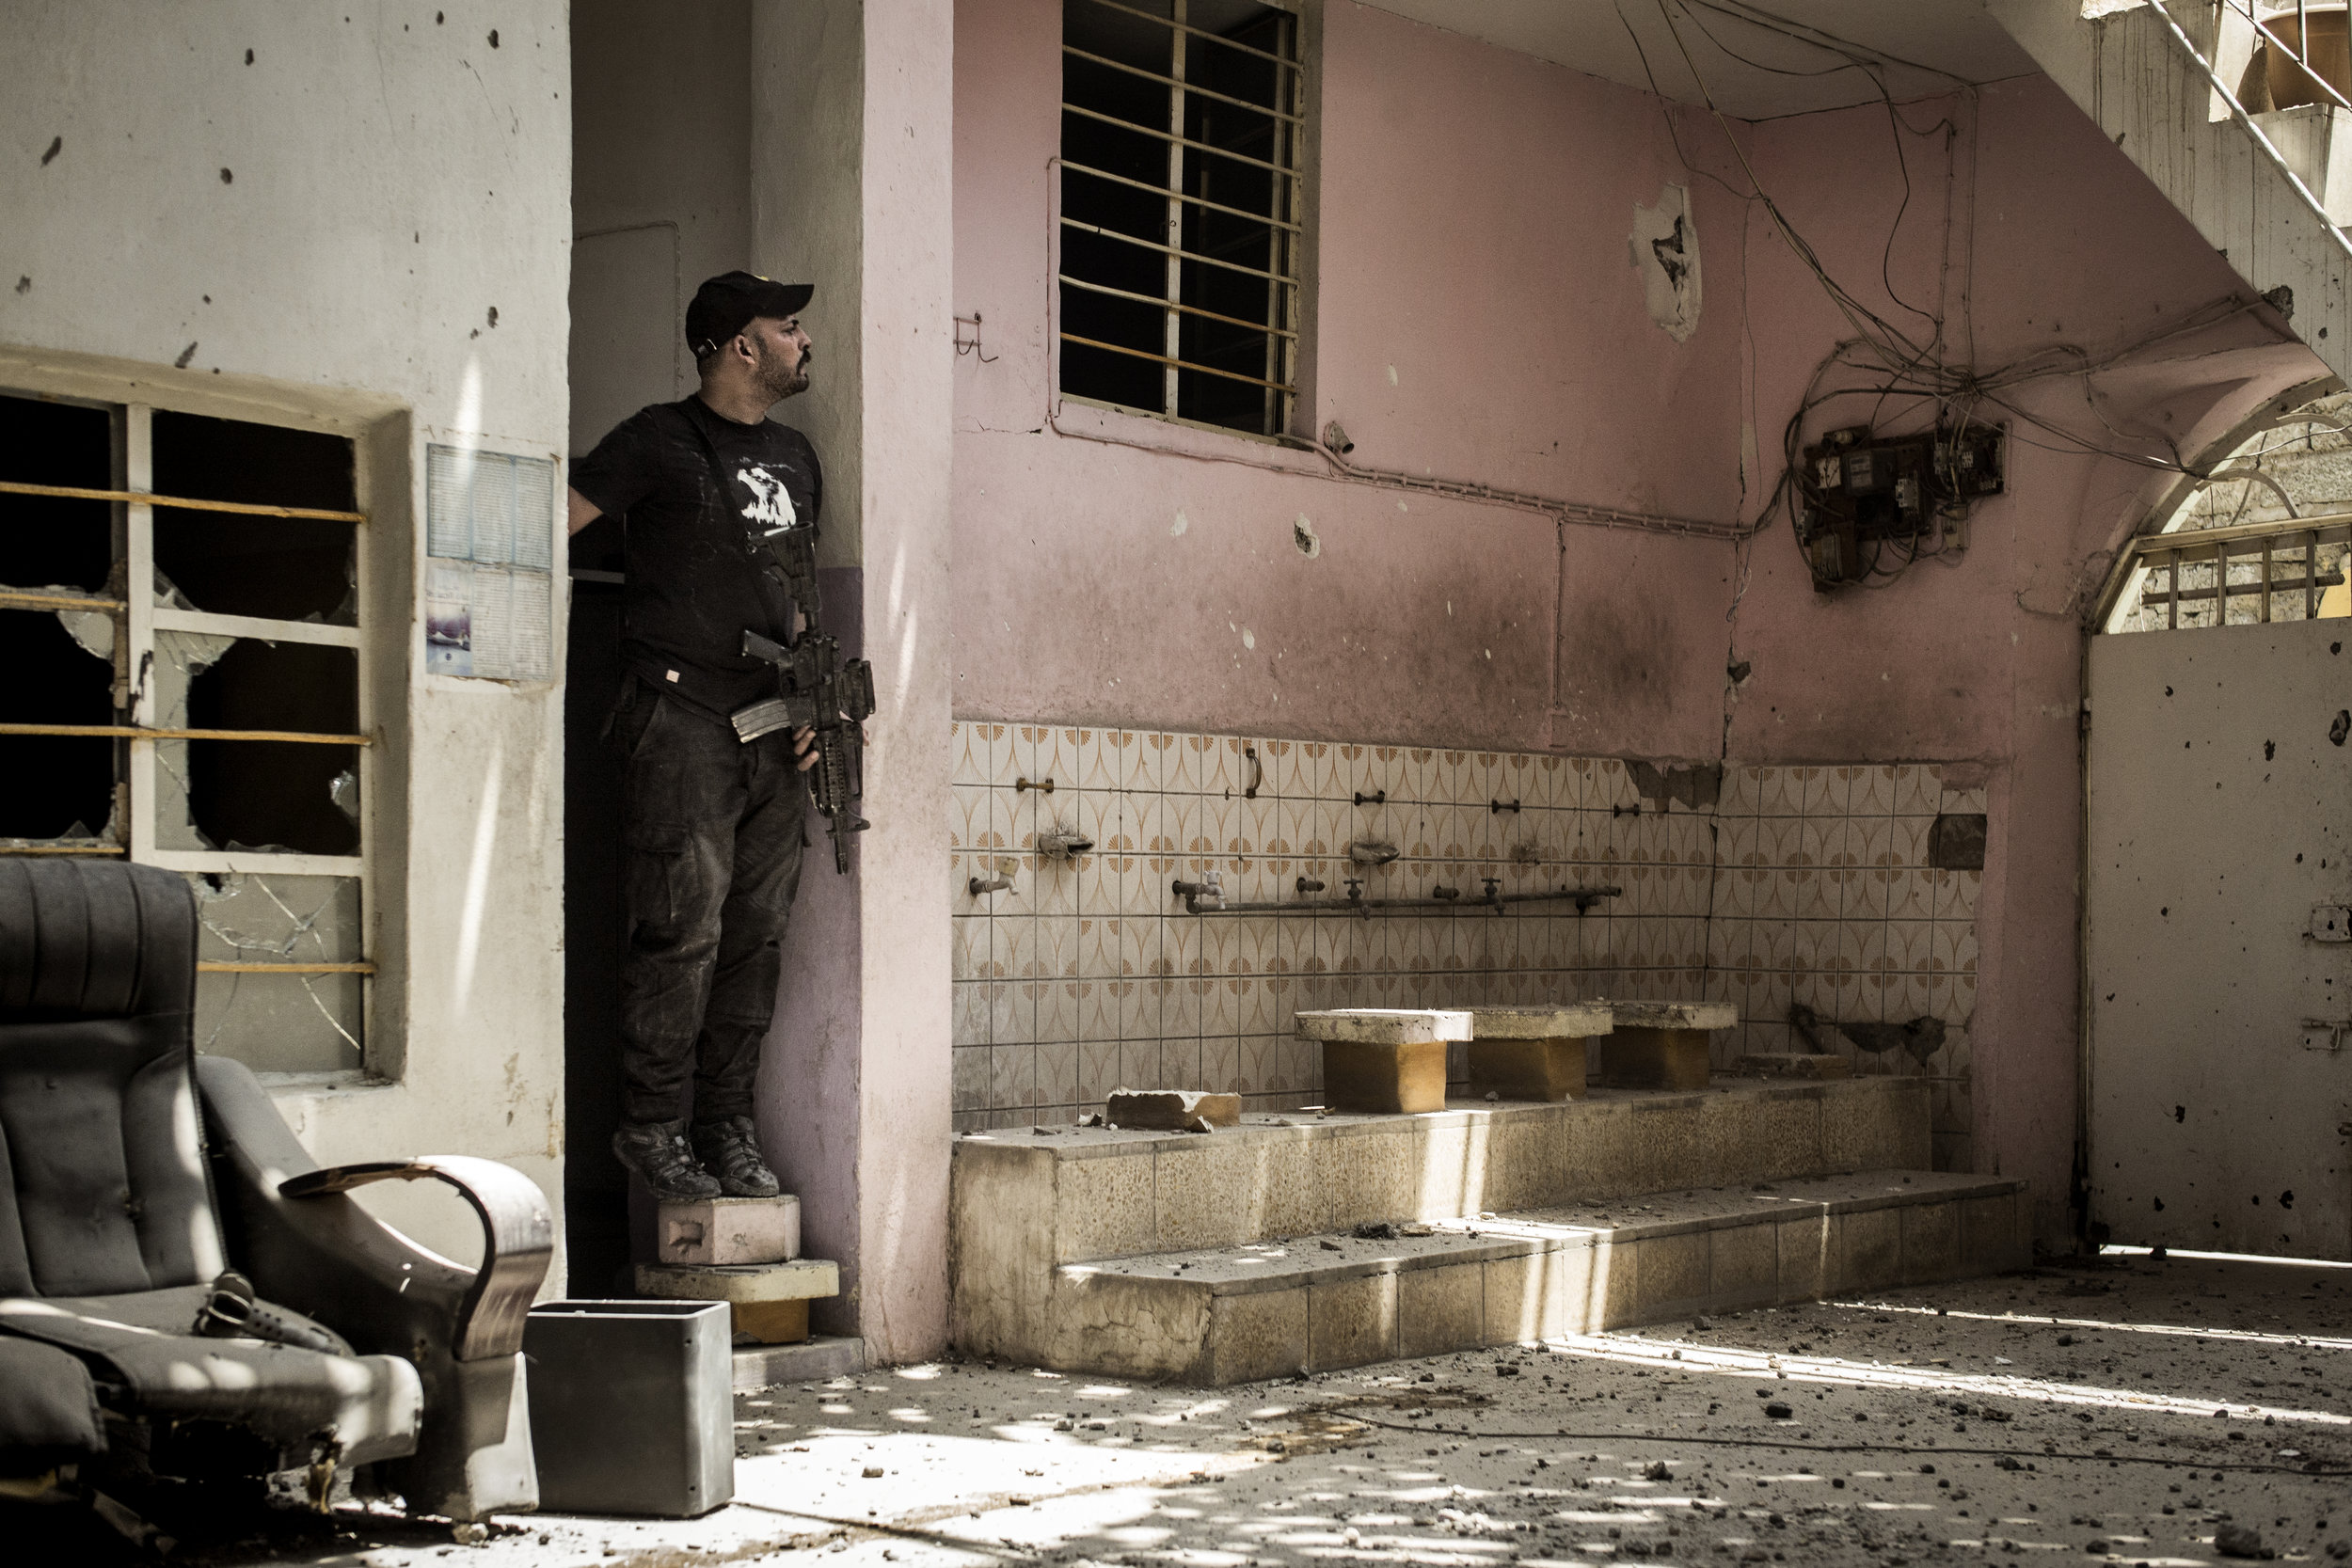 Golden Division soldier scouting for enemy fighters in a building cross the street from an ISIS position.